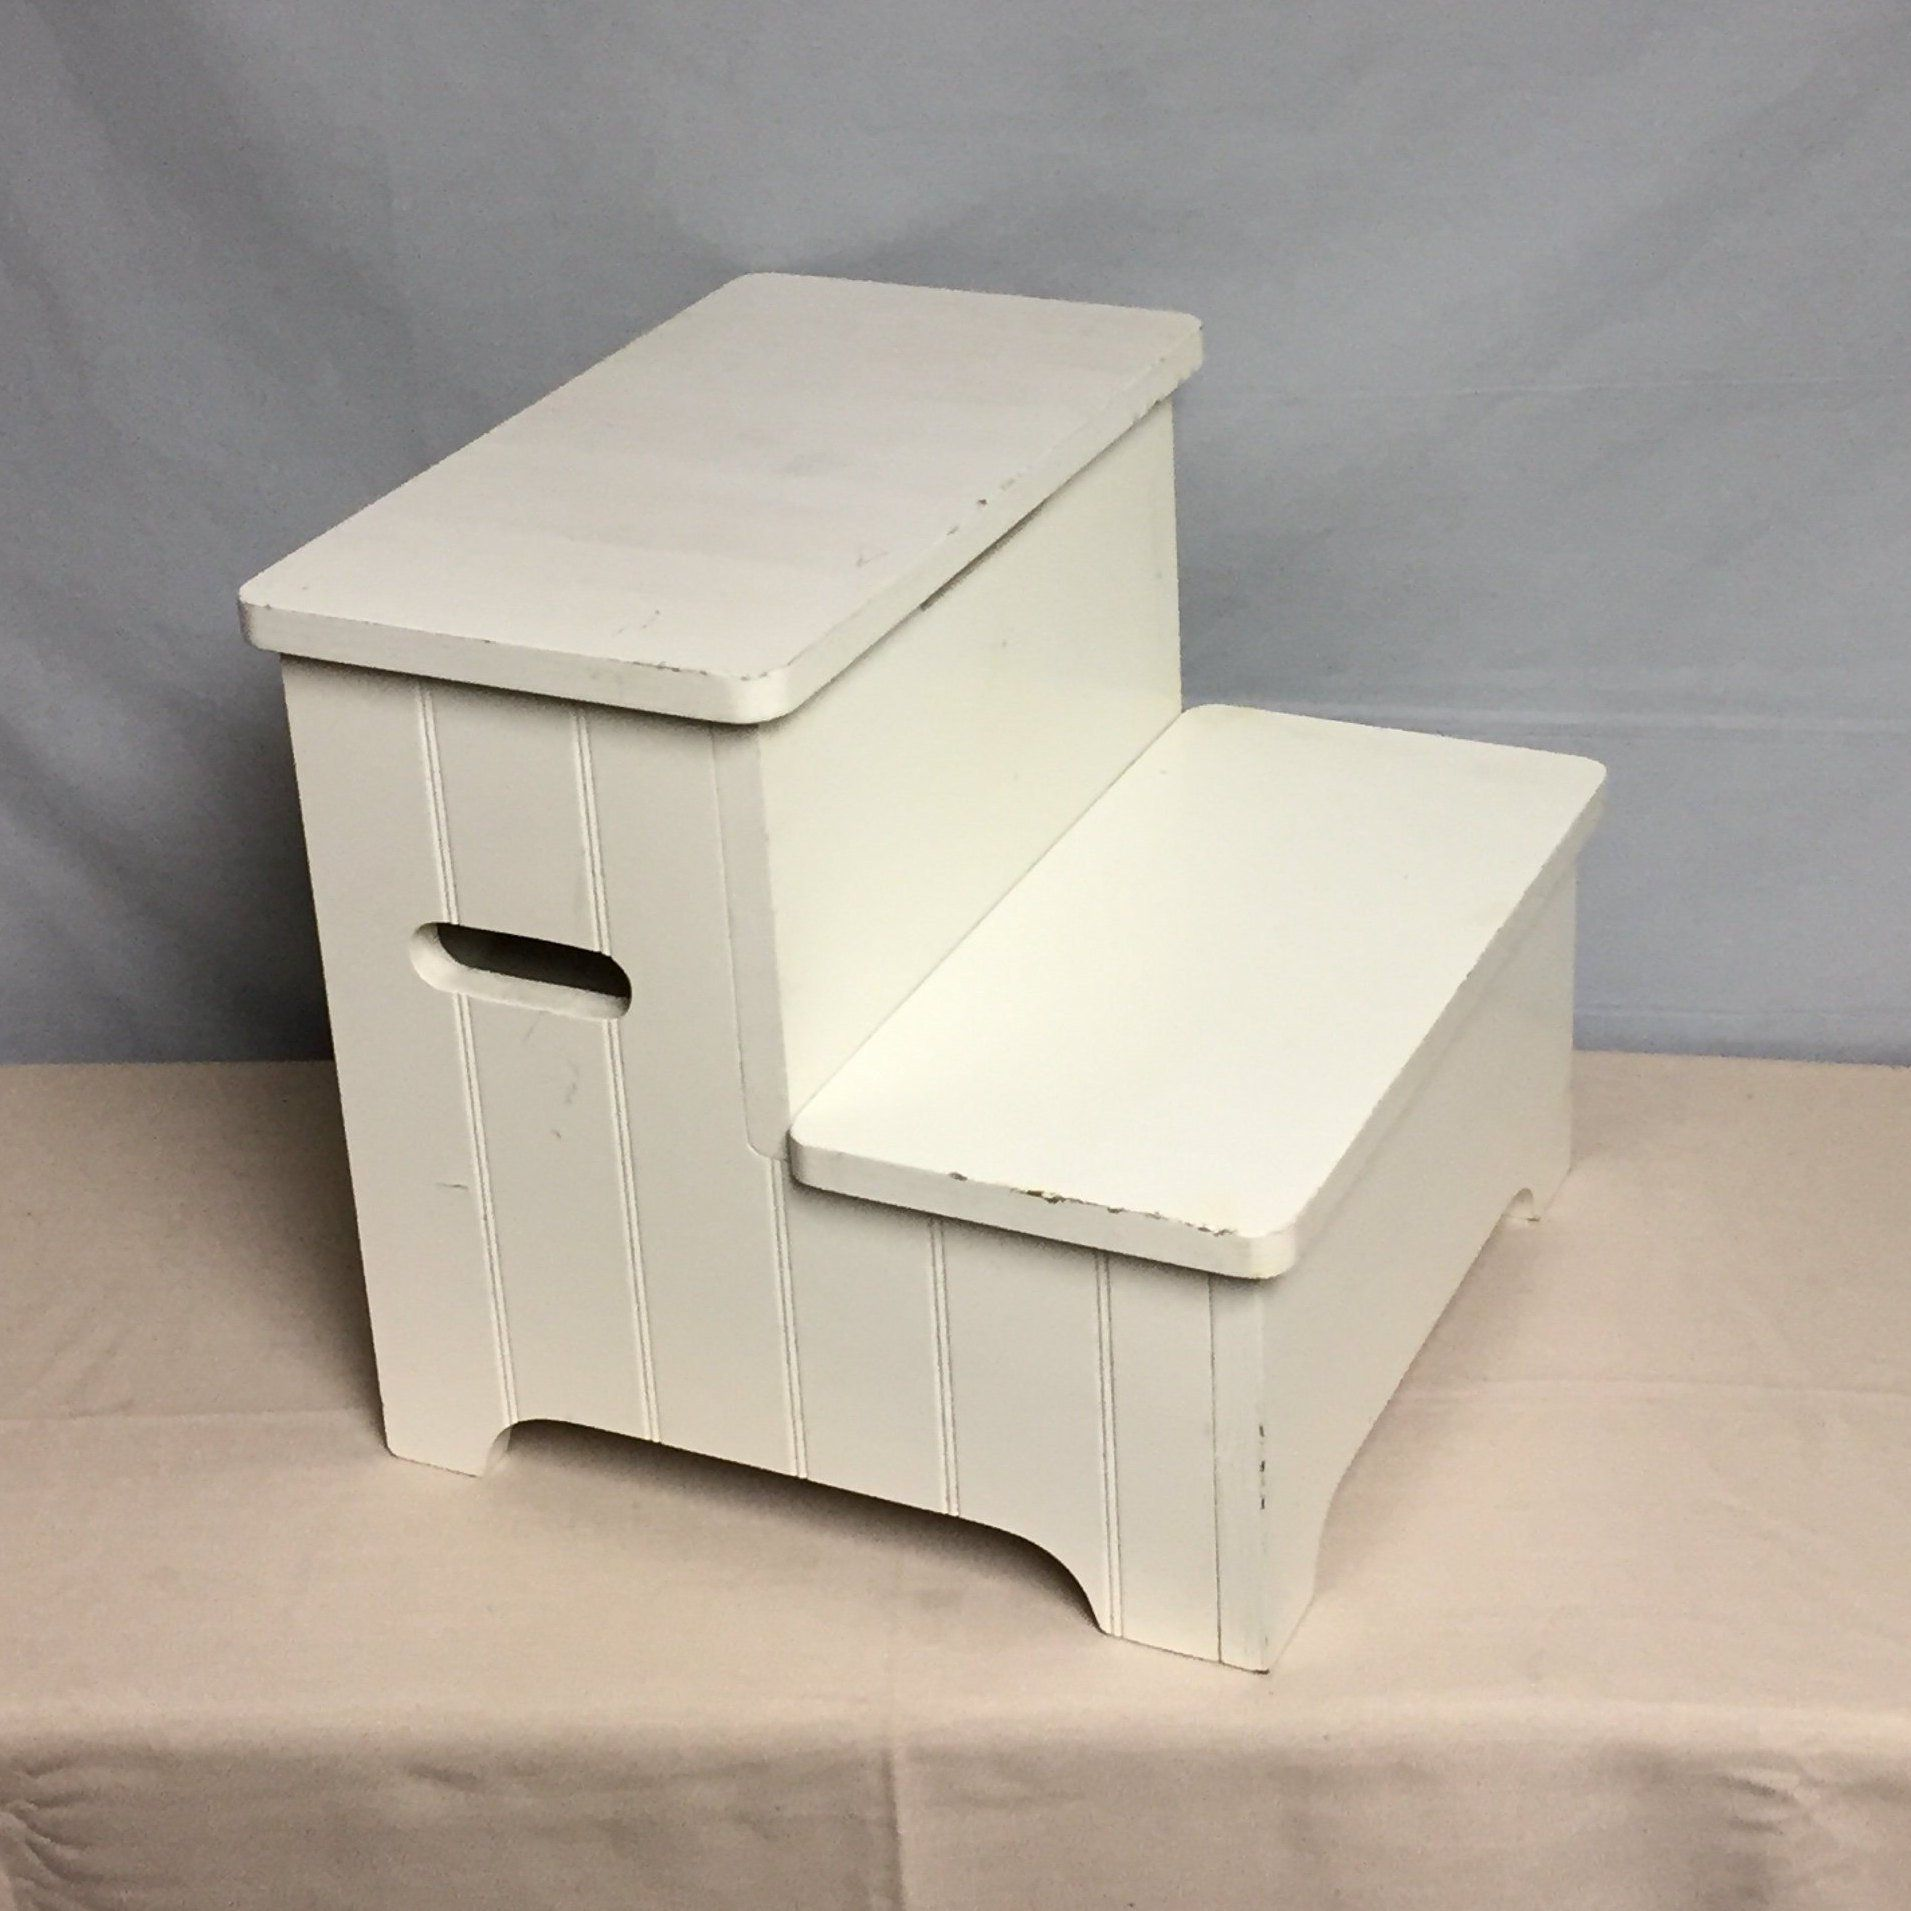 White Wooden Step Stool With Storage Compartment Child S Step Up